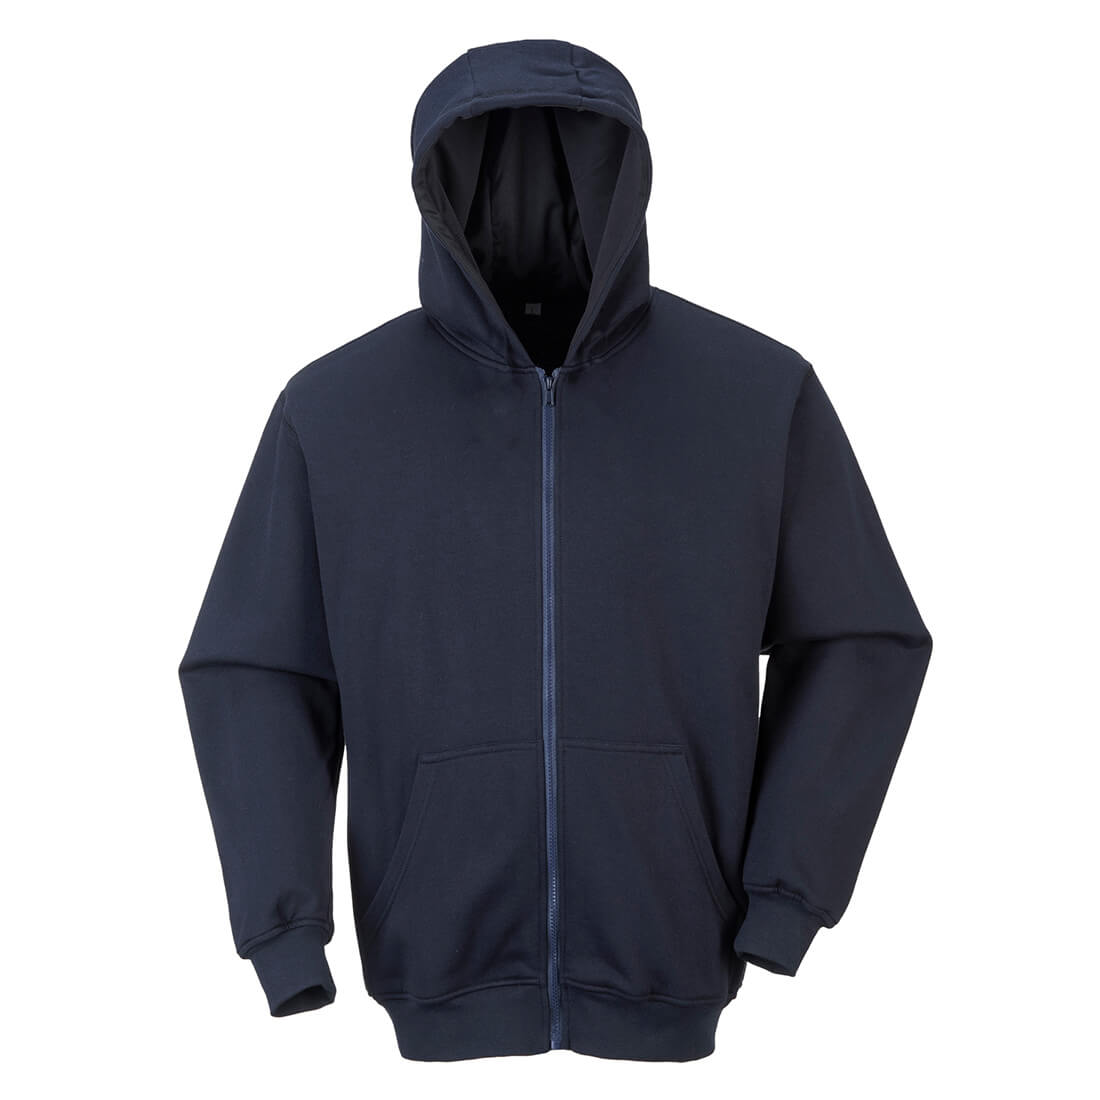 Image of Modaflame Mens Anti Static Flame Resistant Hoodie Navy 2XL